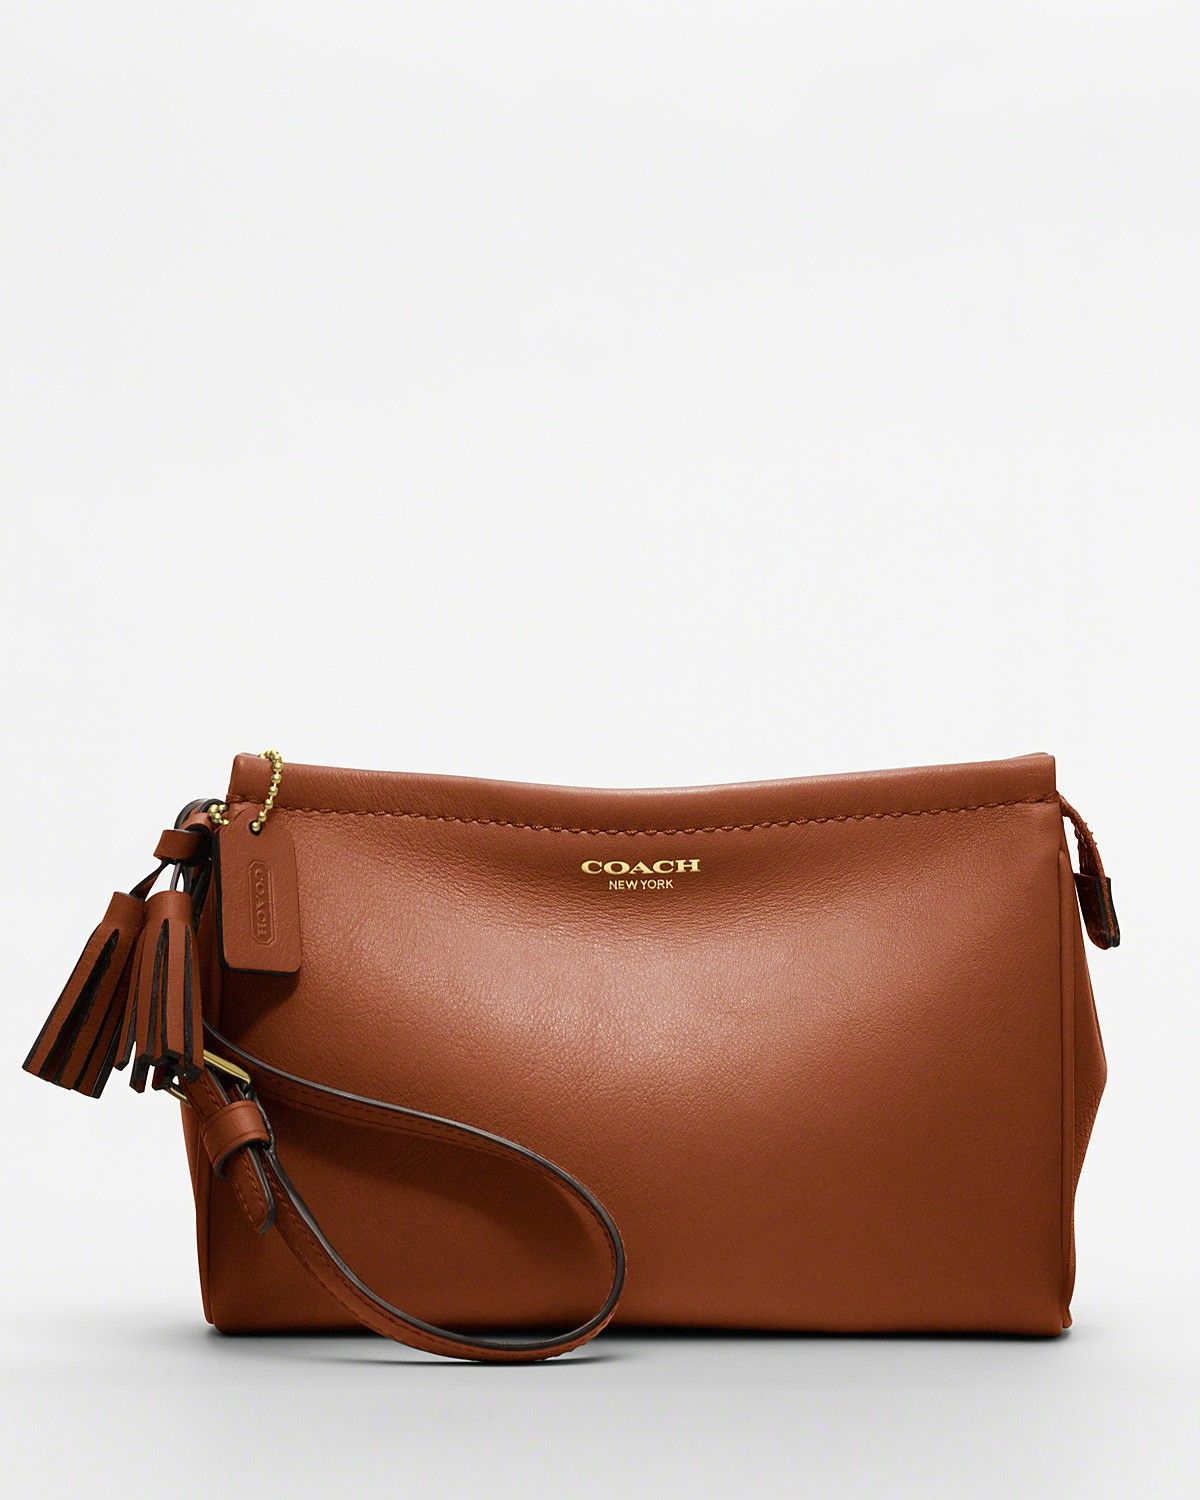 COACH Legacy Leather Large Wristlet | Bloomingdale's